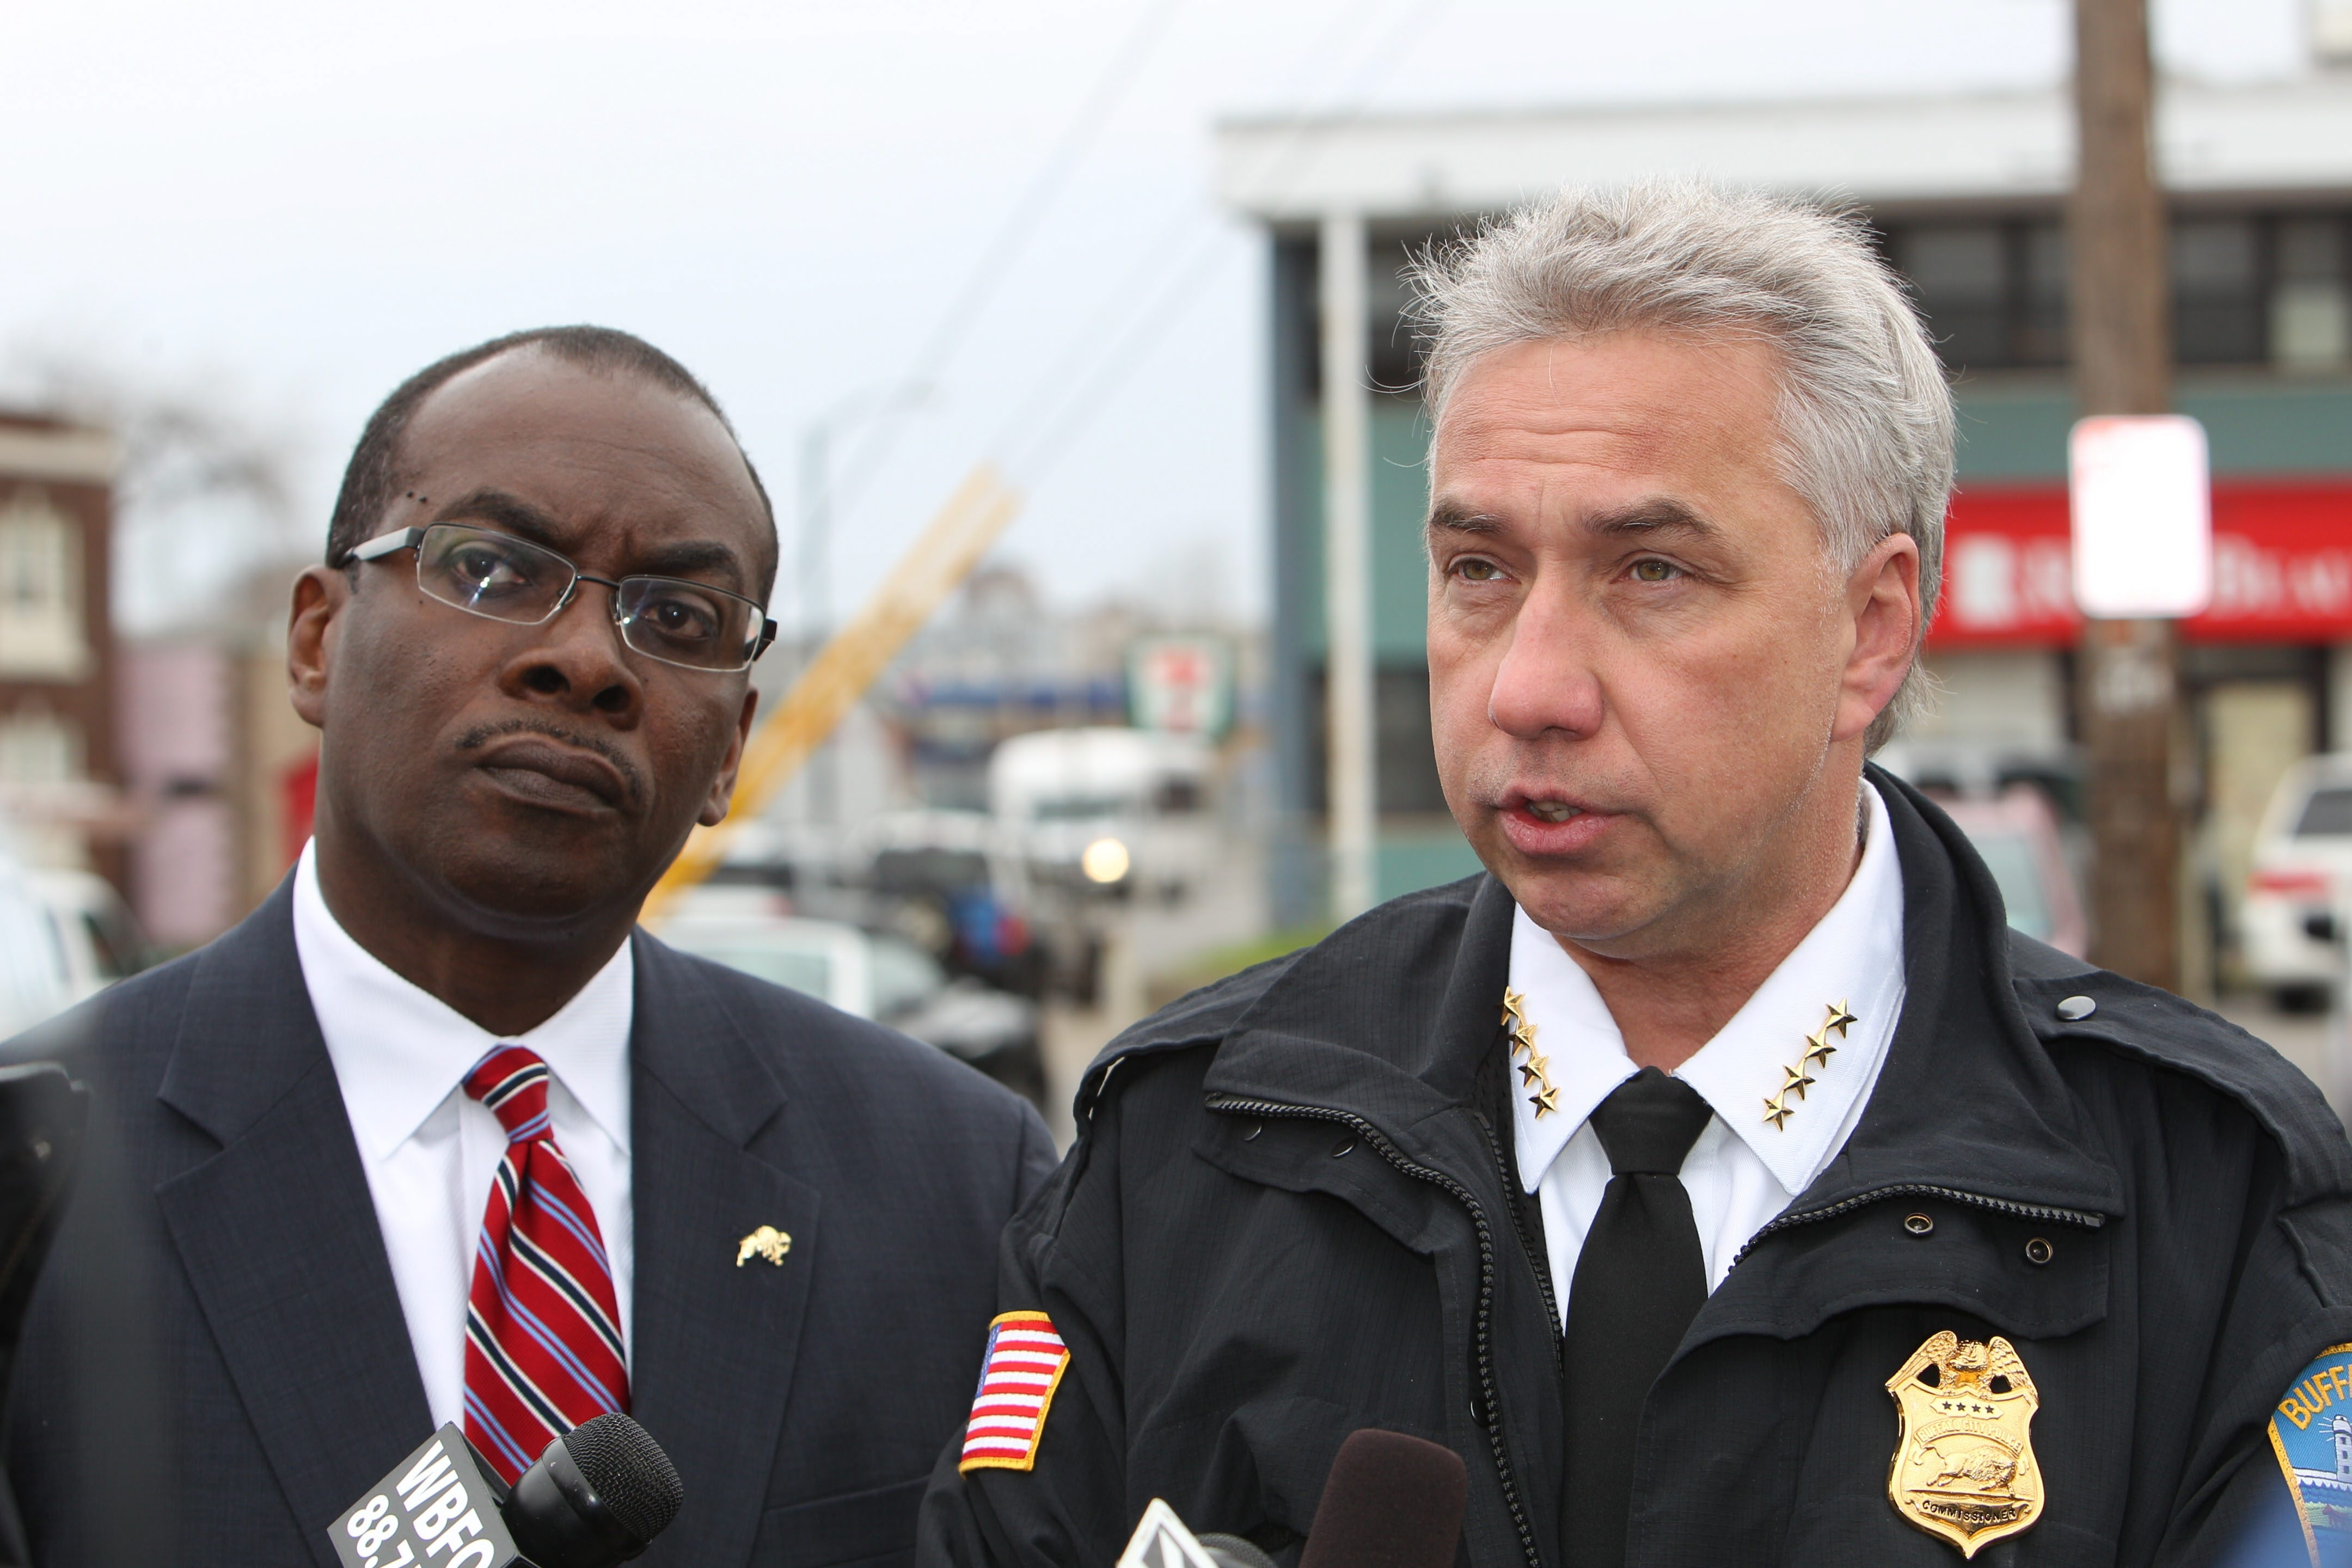 Buffalo taking a bold step to diversify police force, build trust in community